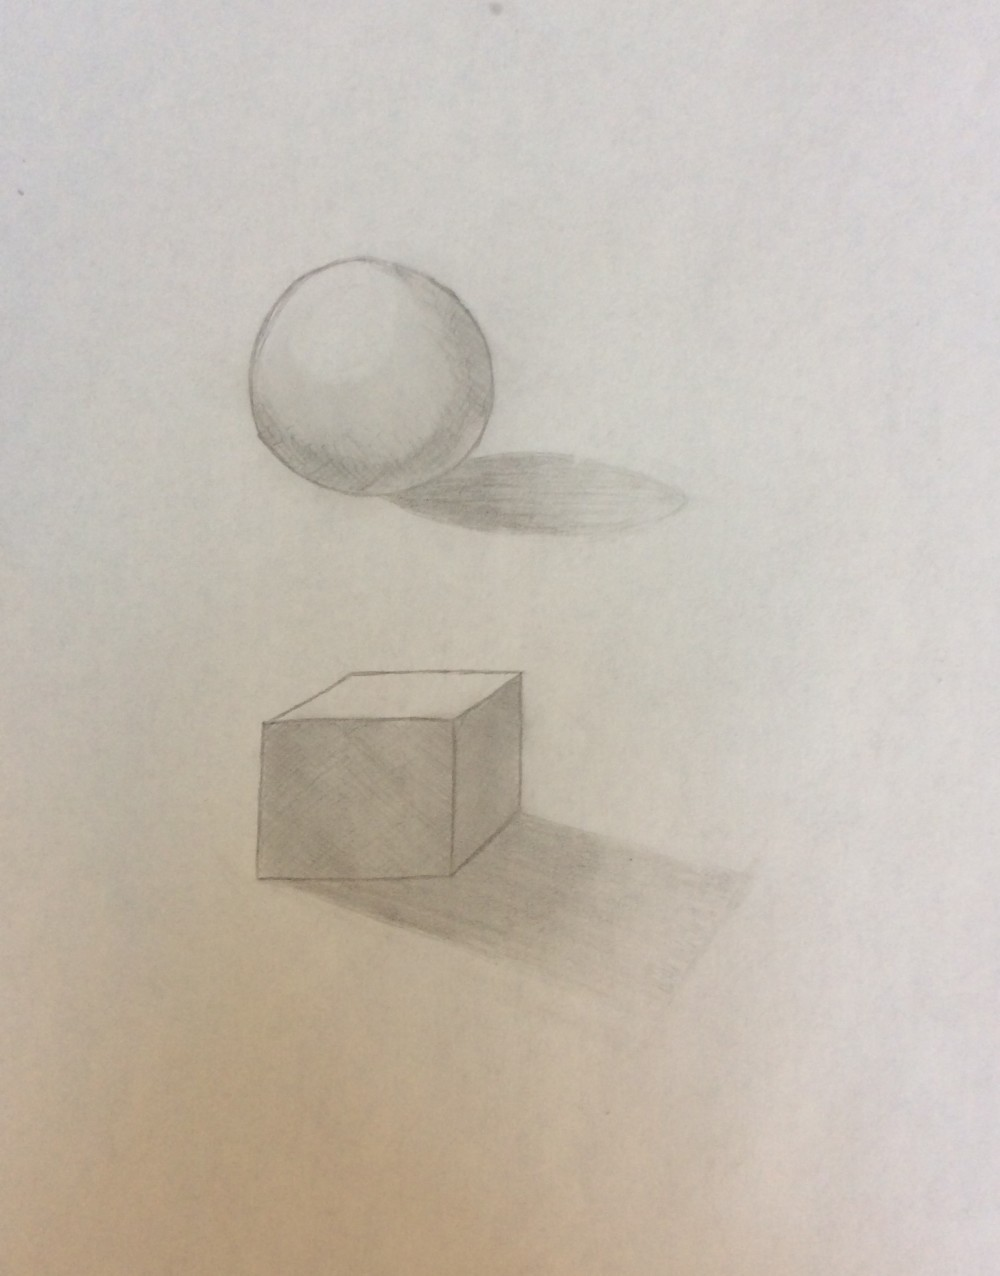 Drawing No. 8 – A Ball and a Square with Shadows